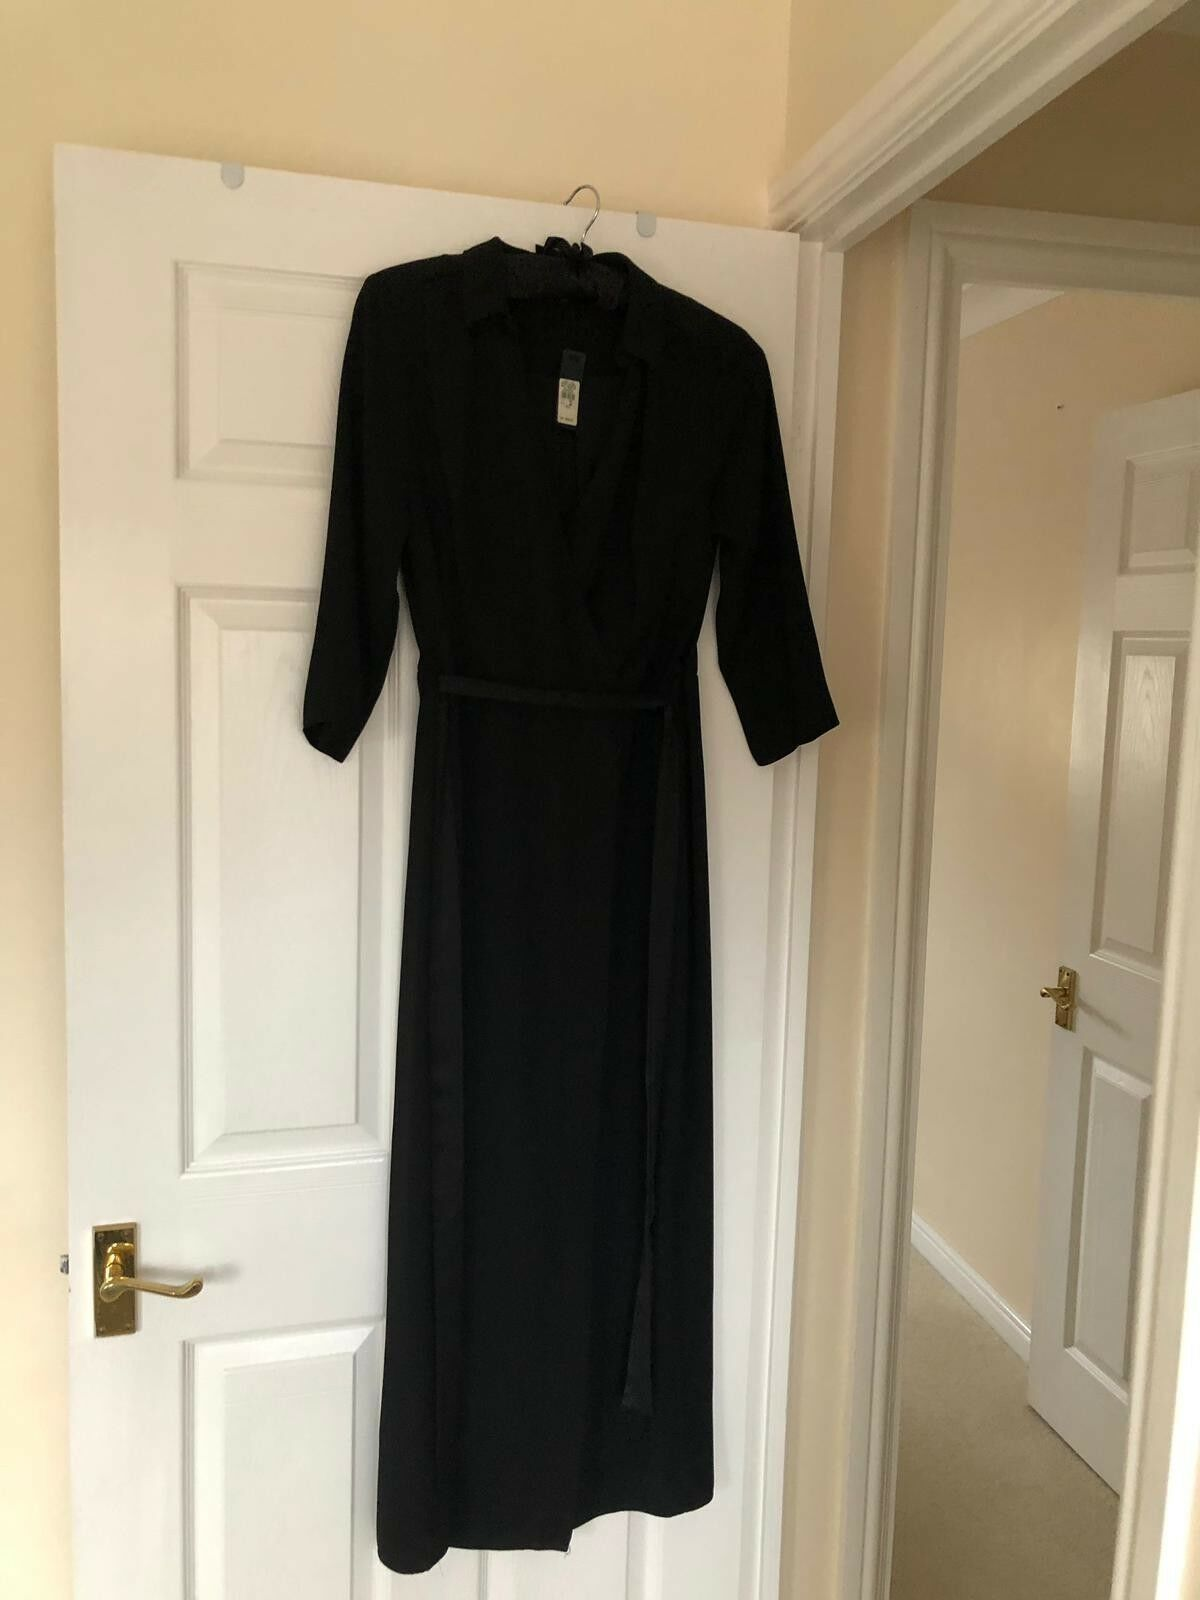 River Island Long Evening Dress Size 14 Brand New With tags